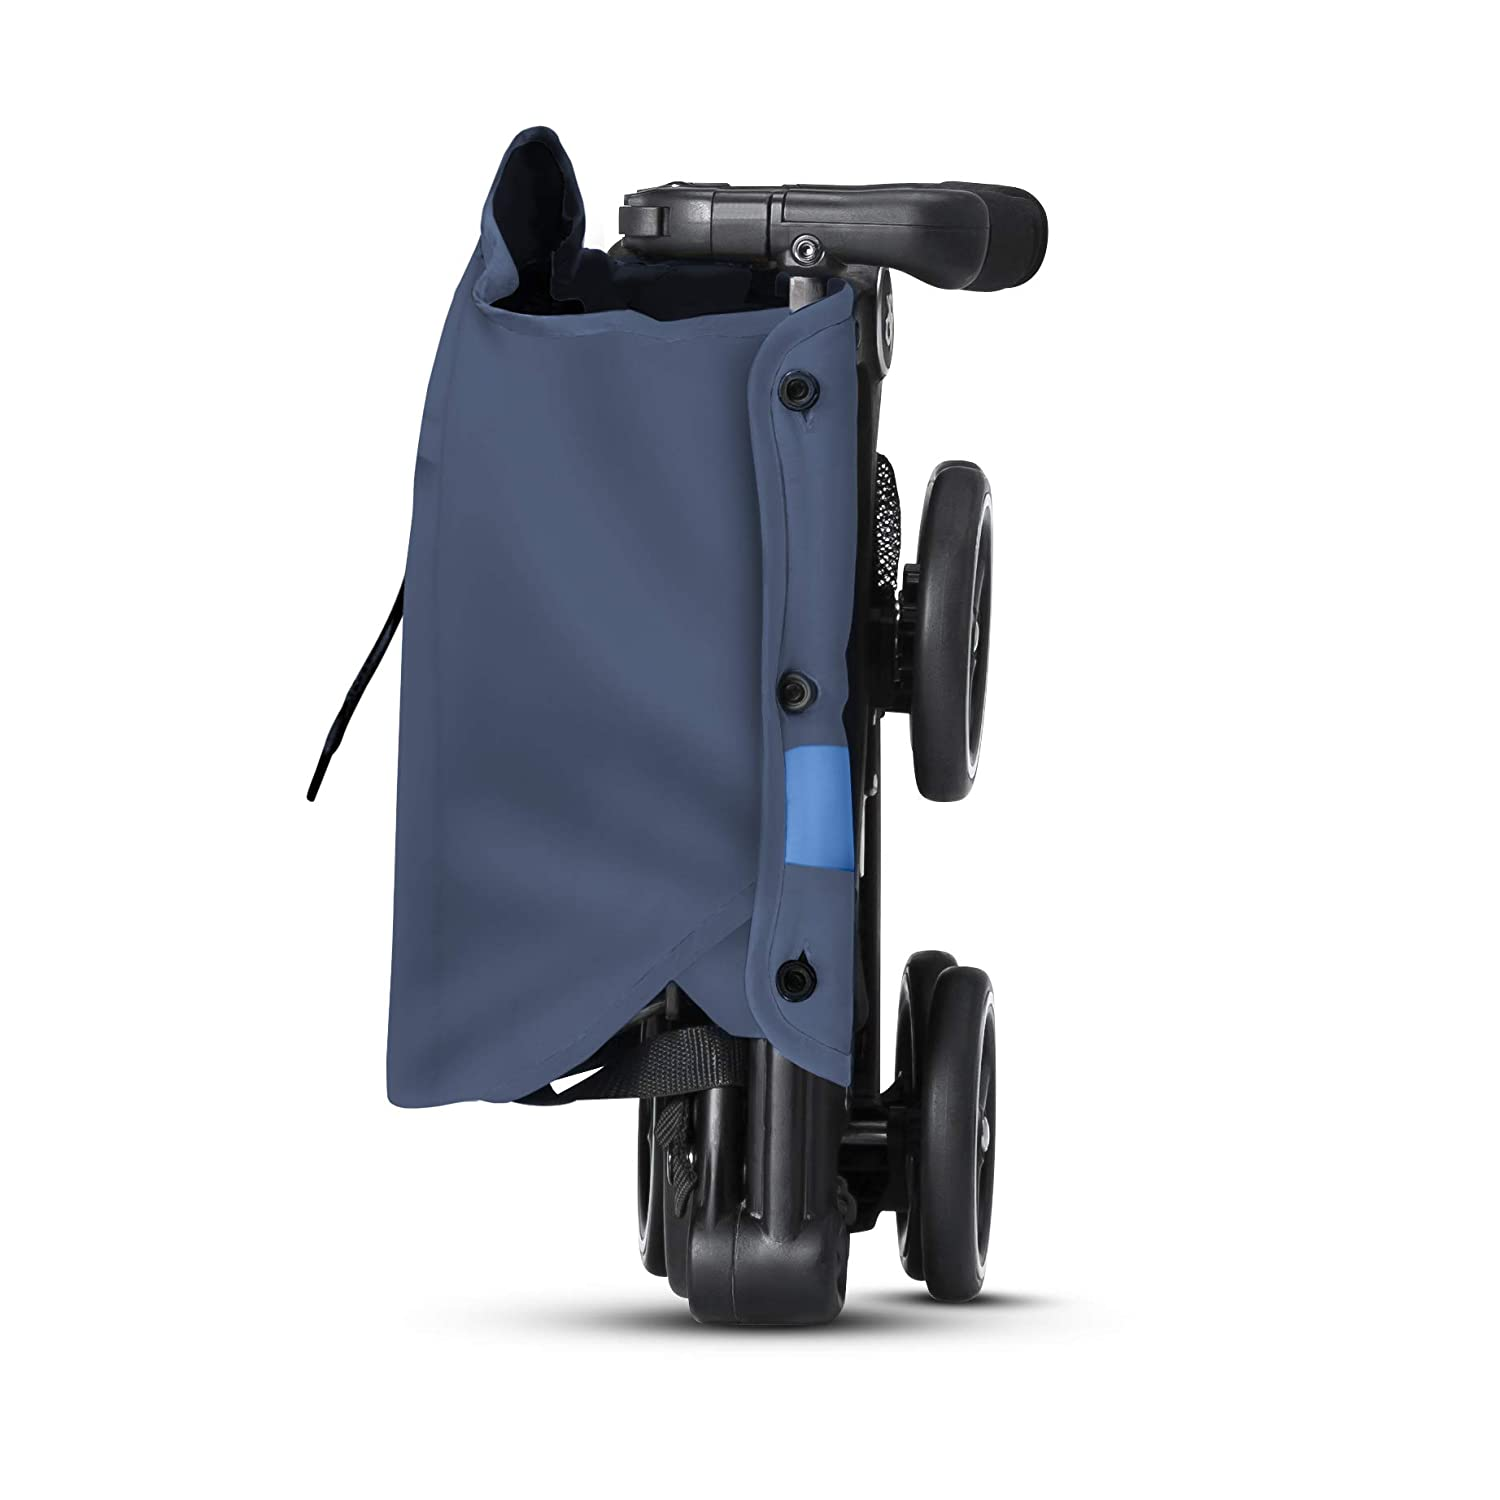 gb Pockit+ All-Terrain, Ultra Compact Lightweight Travel Stroller with Canopy and Reclining Seat in Night Blue, 10.6 pounds